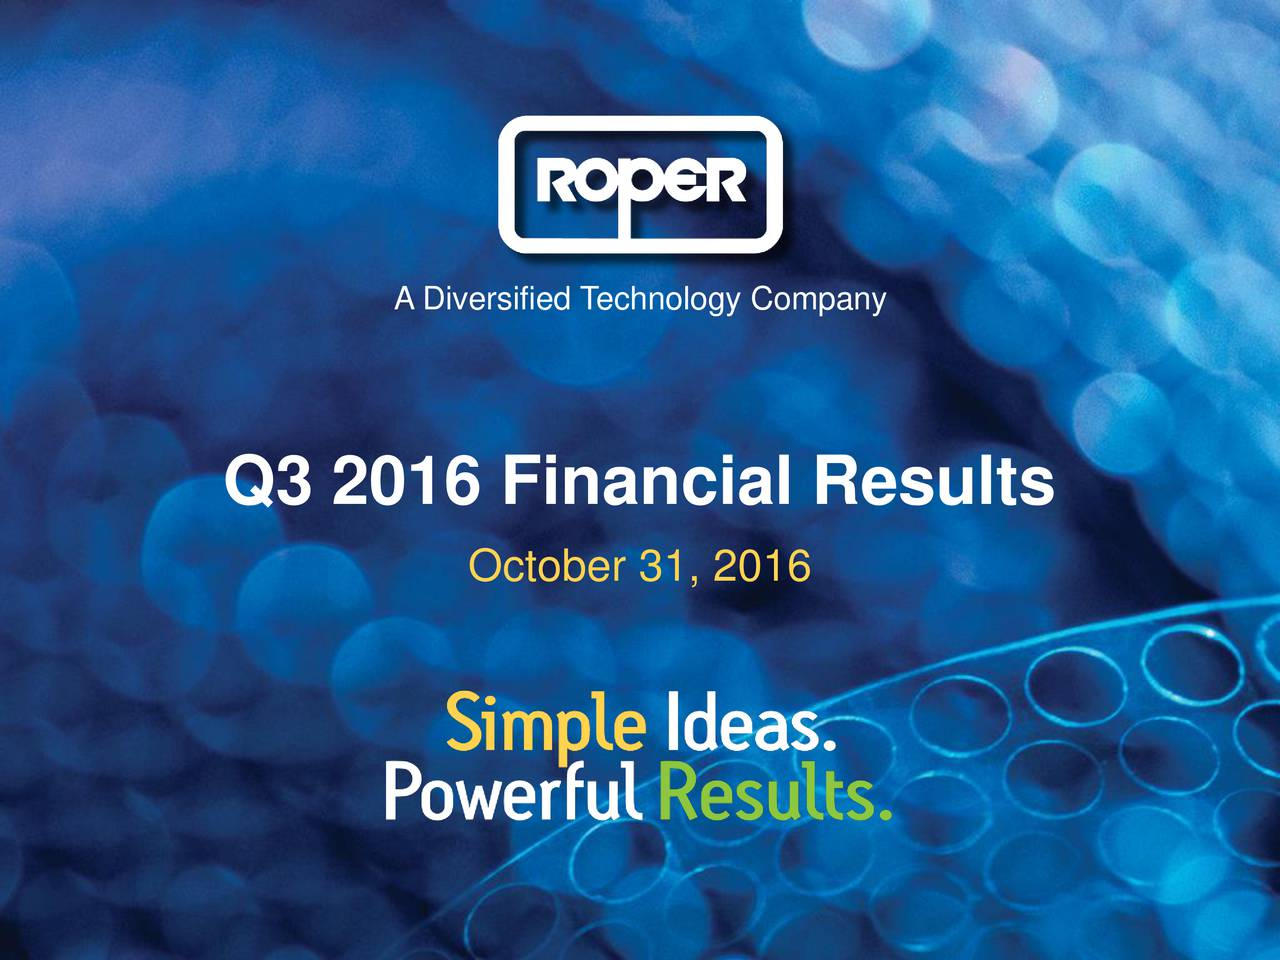 101 164 91 175 A Diversified Technology Company 213 192 192 192 Q3 2016 Financial Results 255 October 31, 2016 210 79 155 187 89